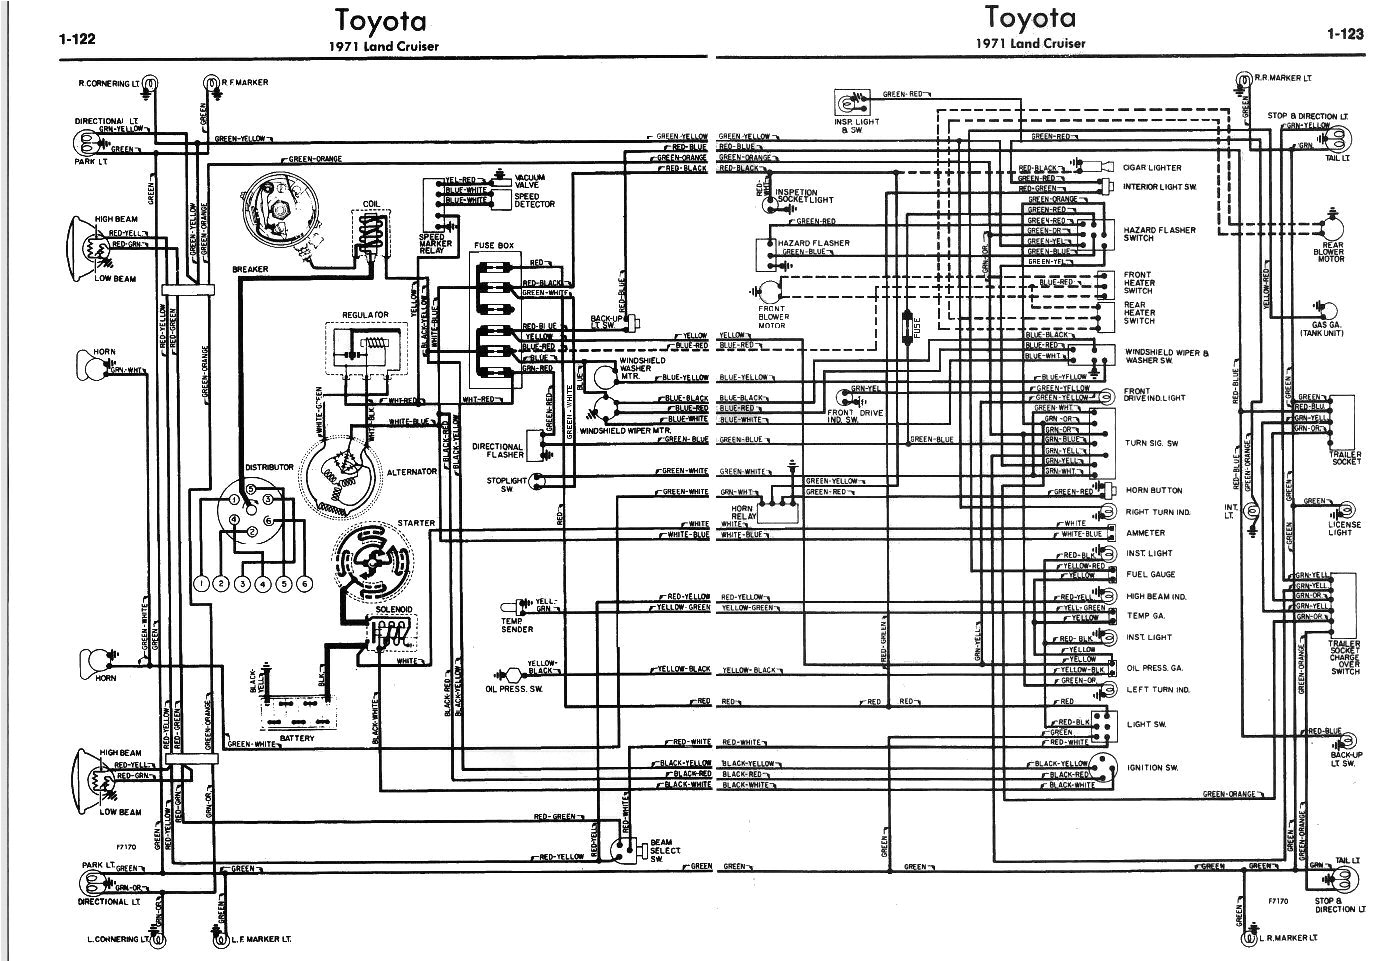 coolerman u0027s electrical schematic and fsm file retrieval1976 fj40 wiring diagram 7